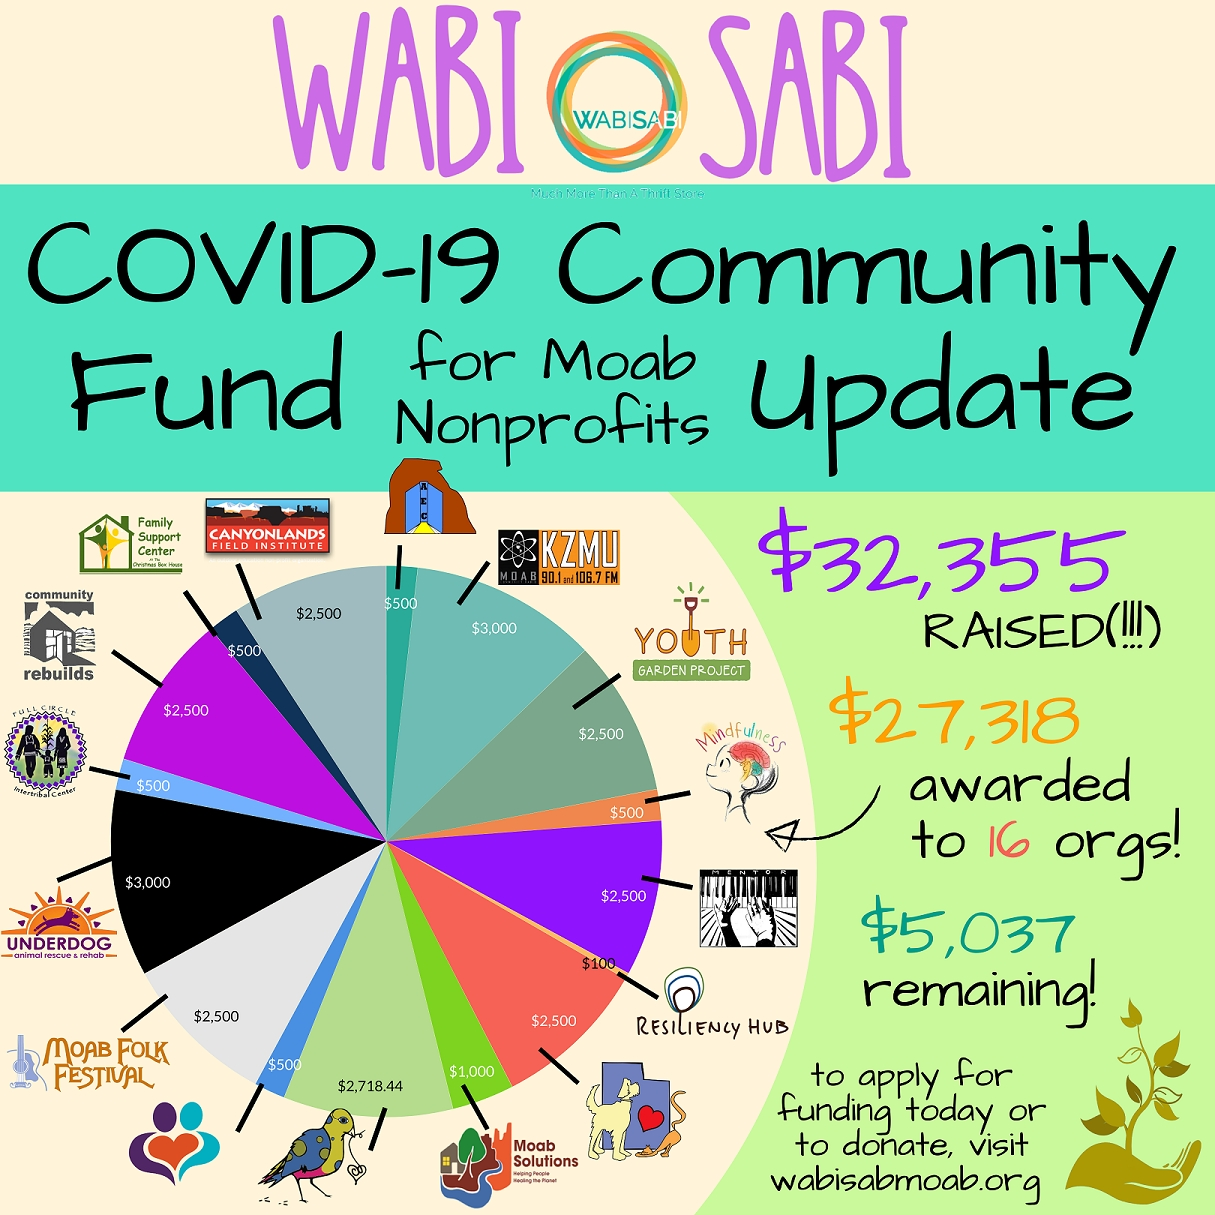 COVID-19  Community Fund For Moab Nonprofits Update